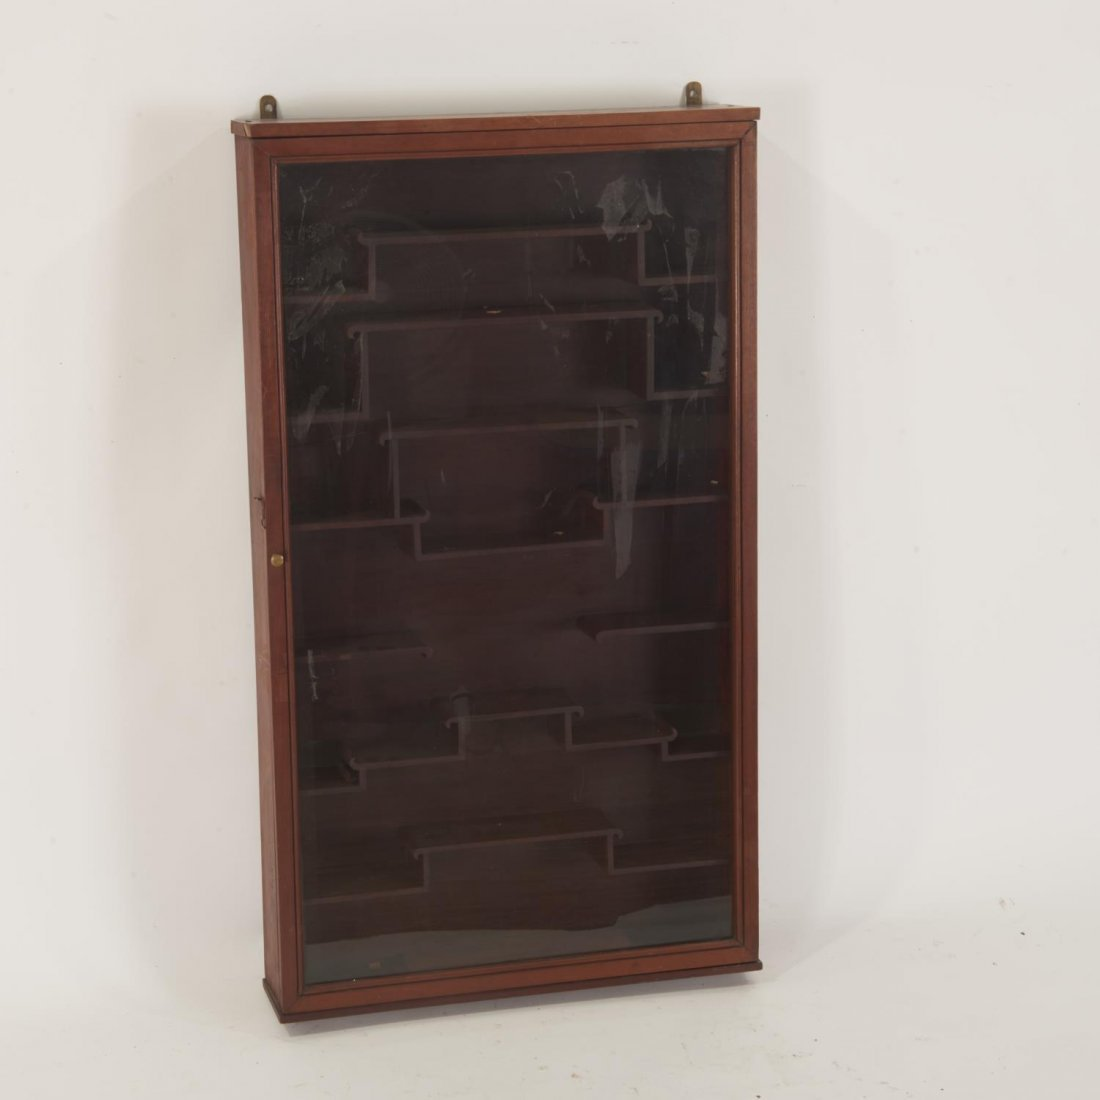 Chinese hardwood snuff bottle wall curio cabinet